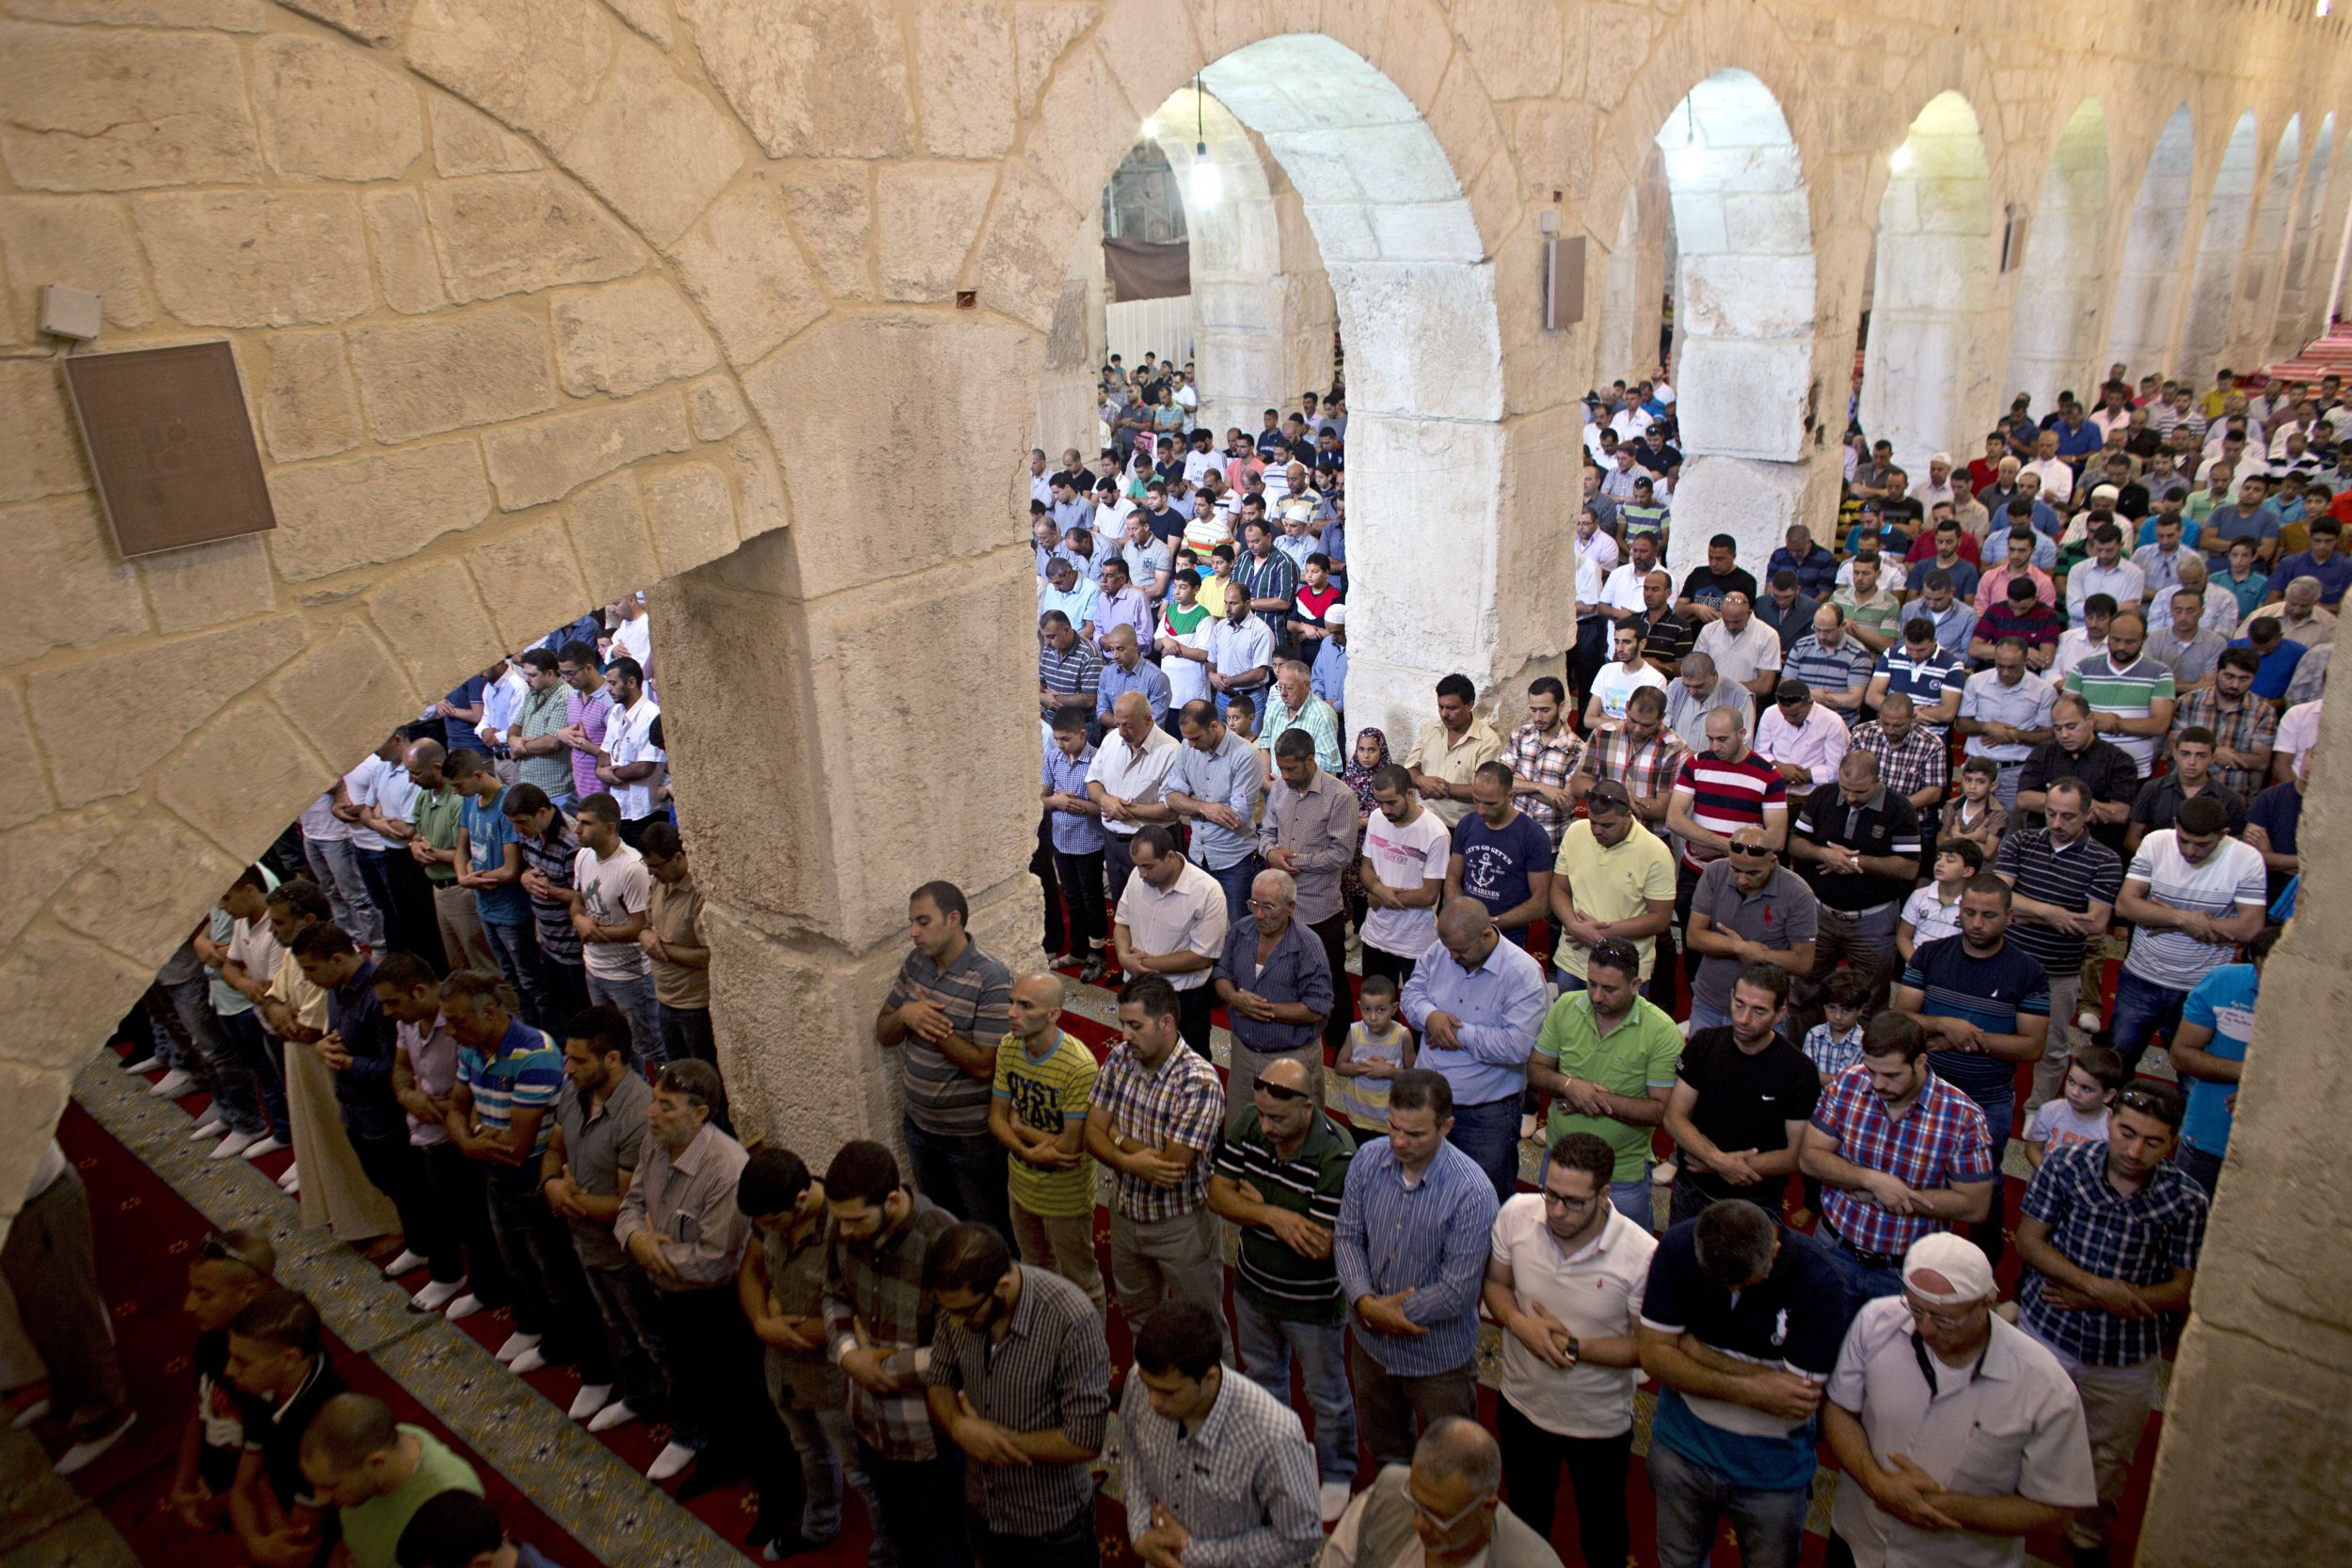 Palestinians tackle blaze at mosque in Al-Aqsa